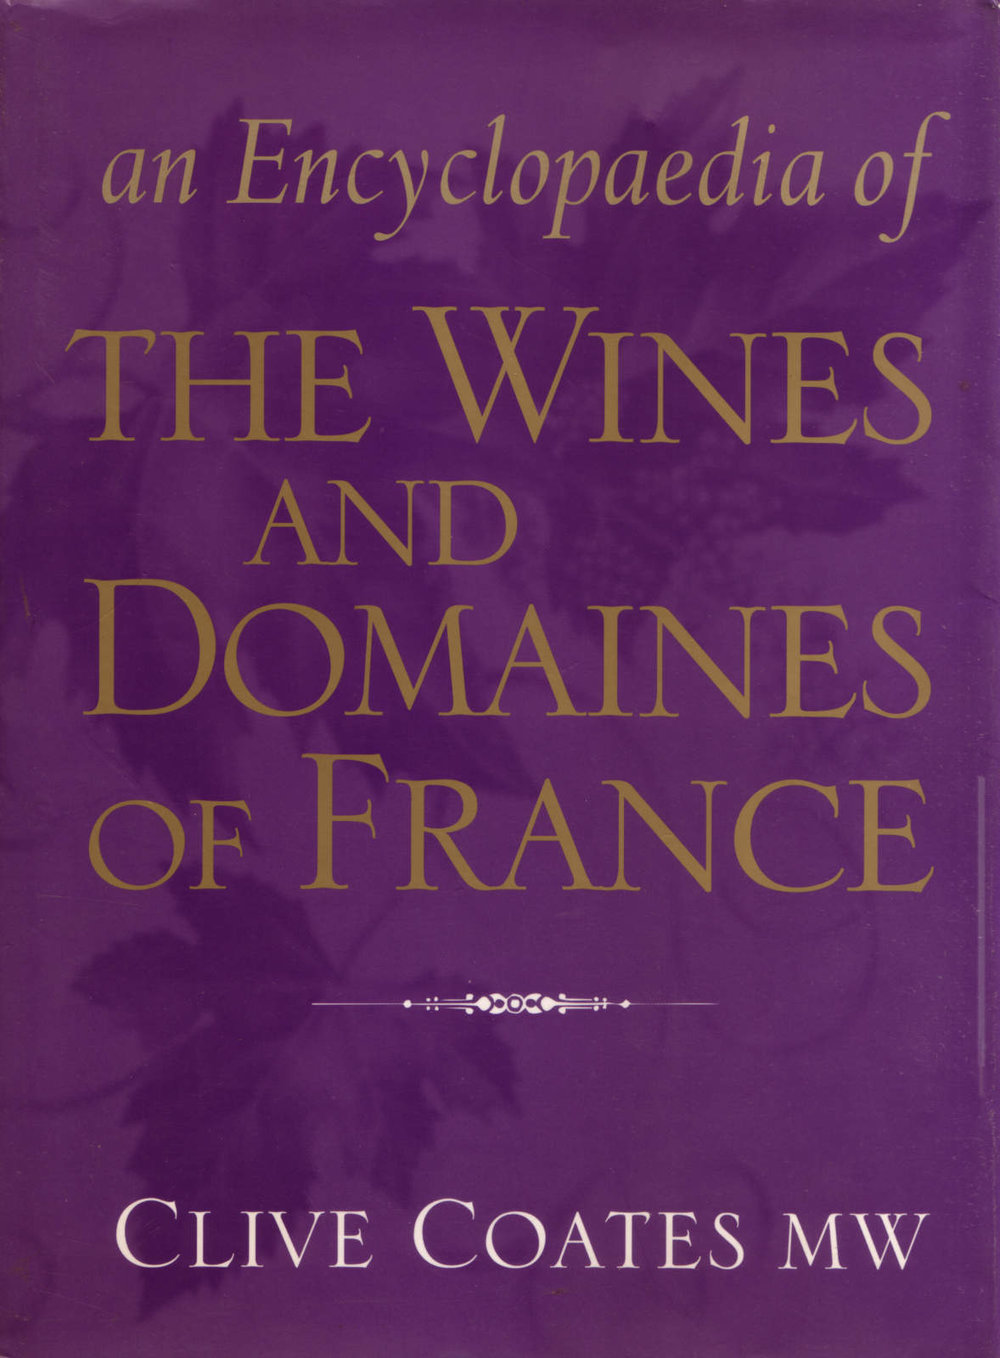 the_wines_and_domaines_of_france.jpg